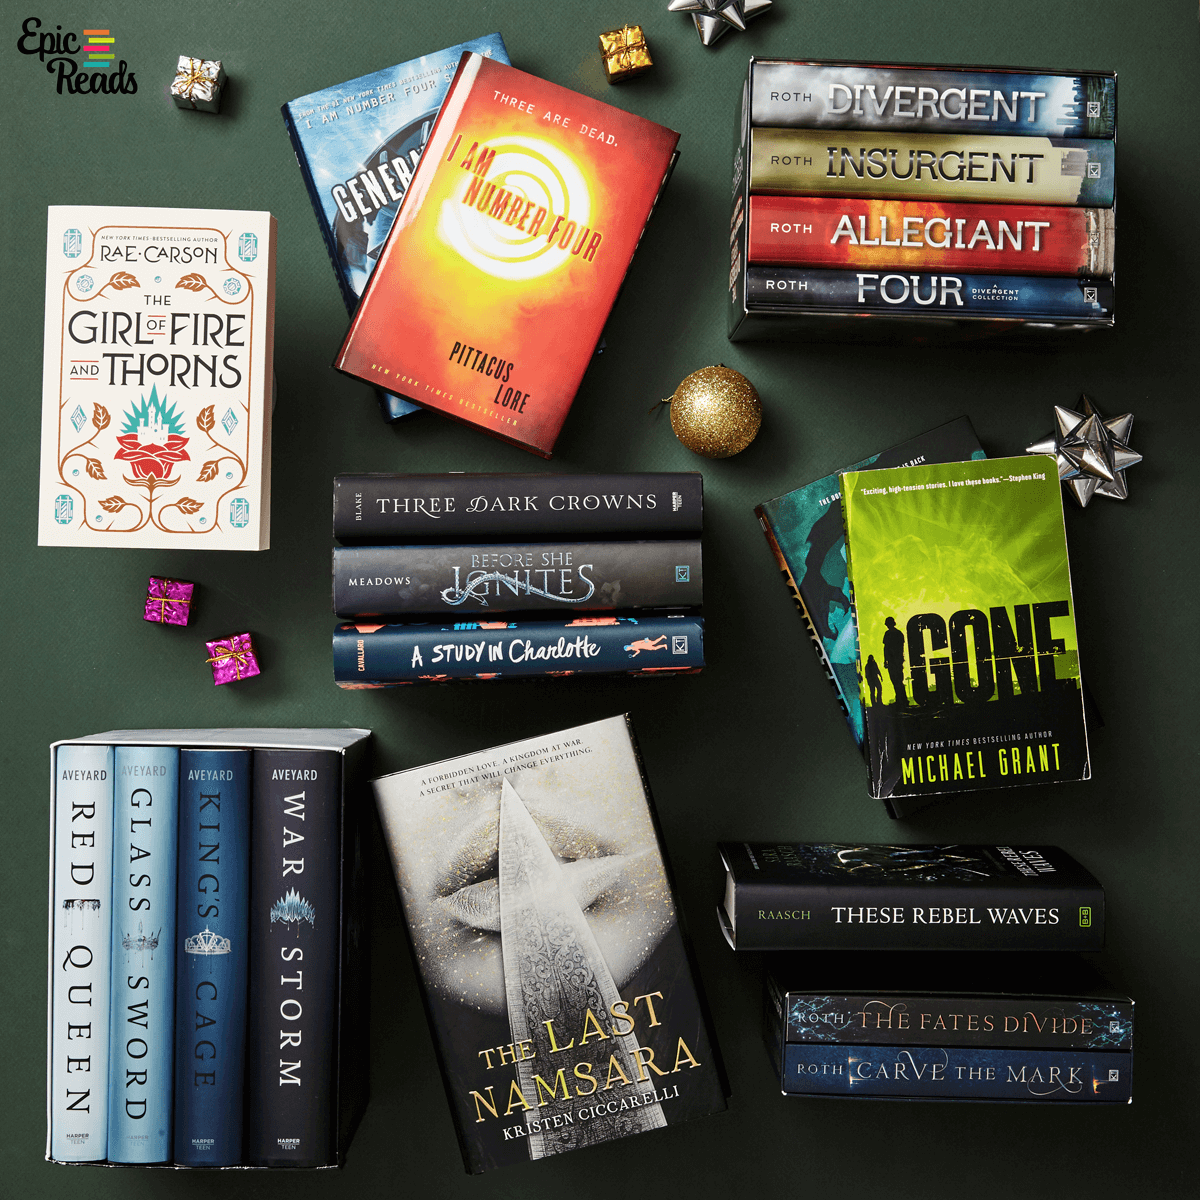 Epic Reads Gift Guide: Binge